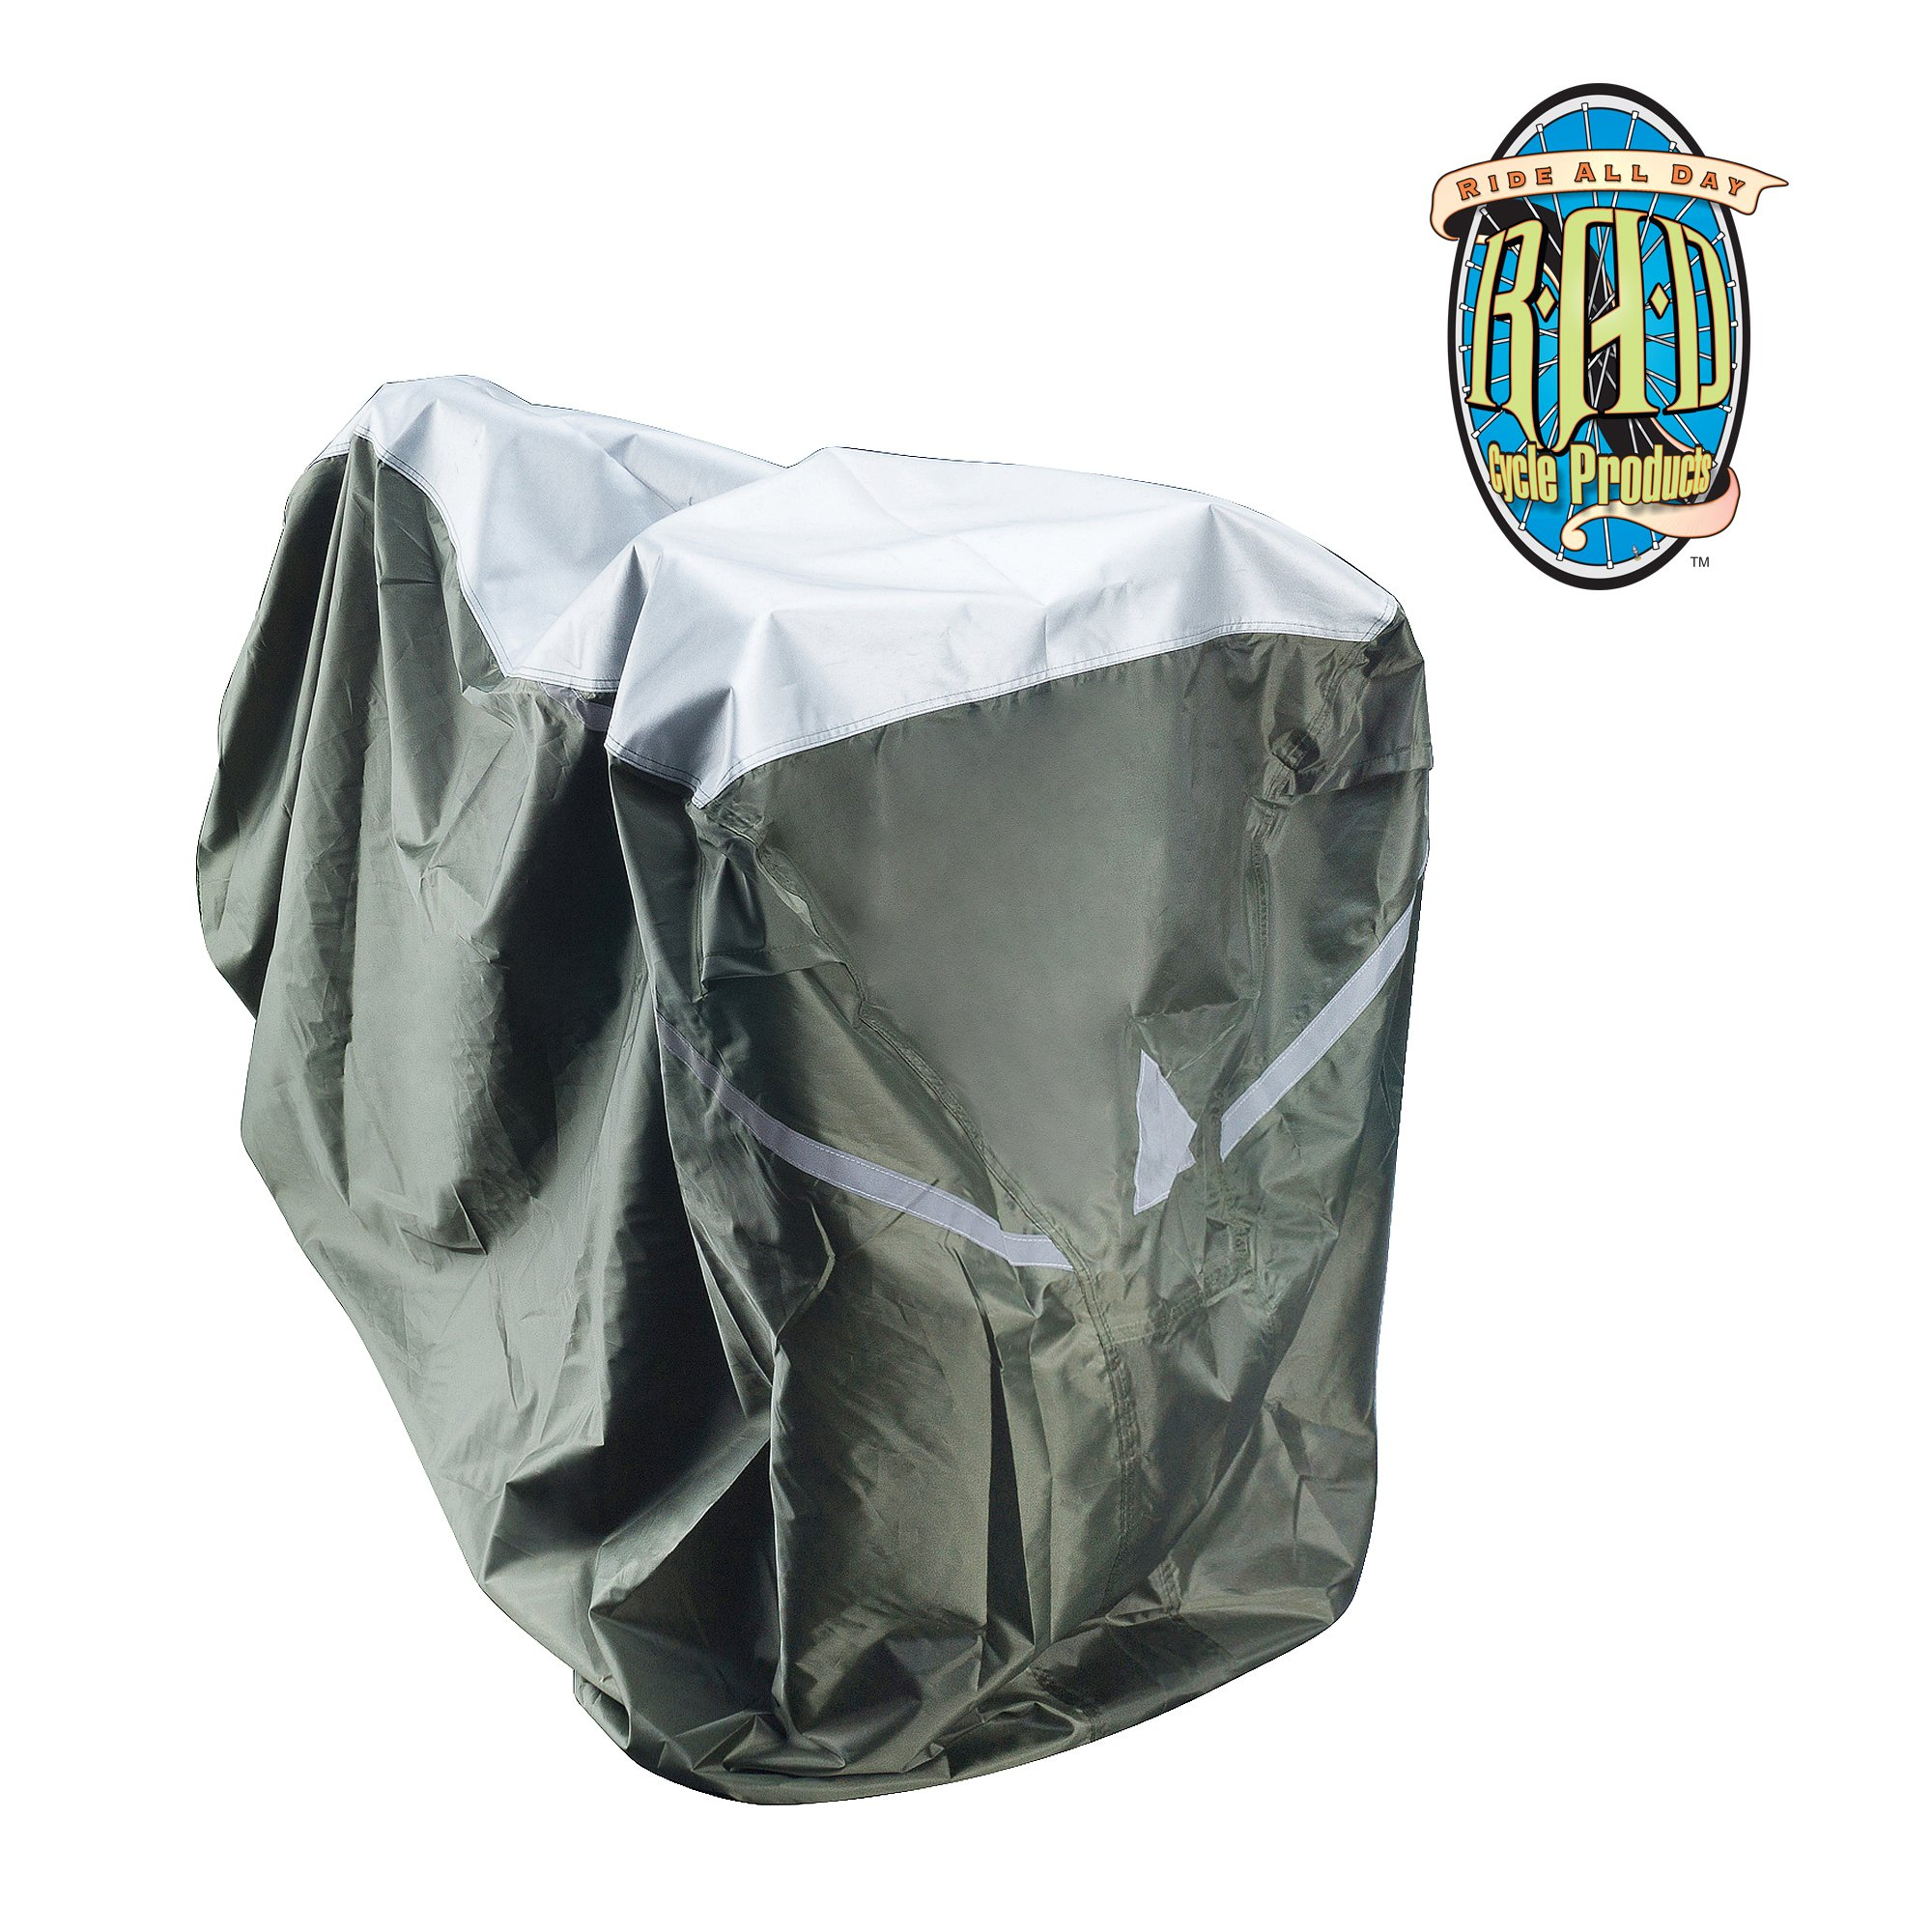 RAD Cycle Waterproof and Weatherproof Extra Large Bike Cover XL for Beach Cruisers, Mountain Bikes, Electric Bicycles